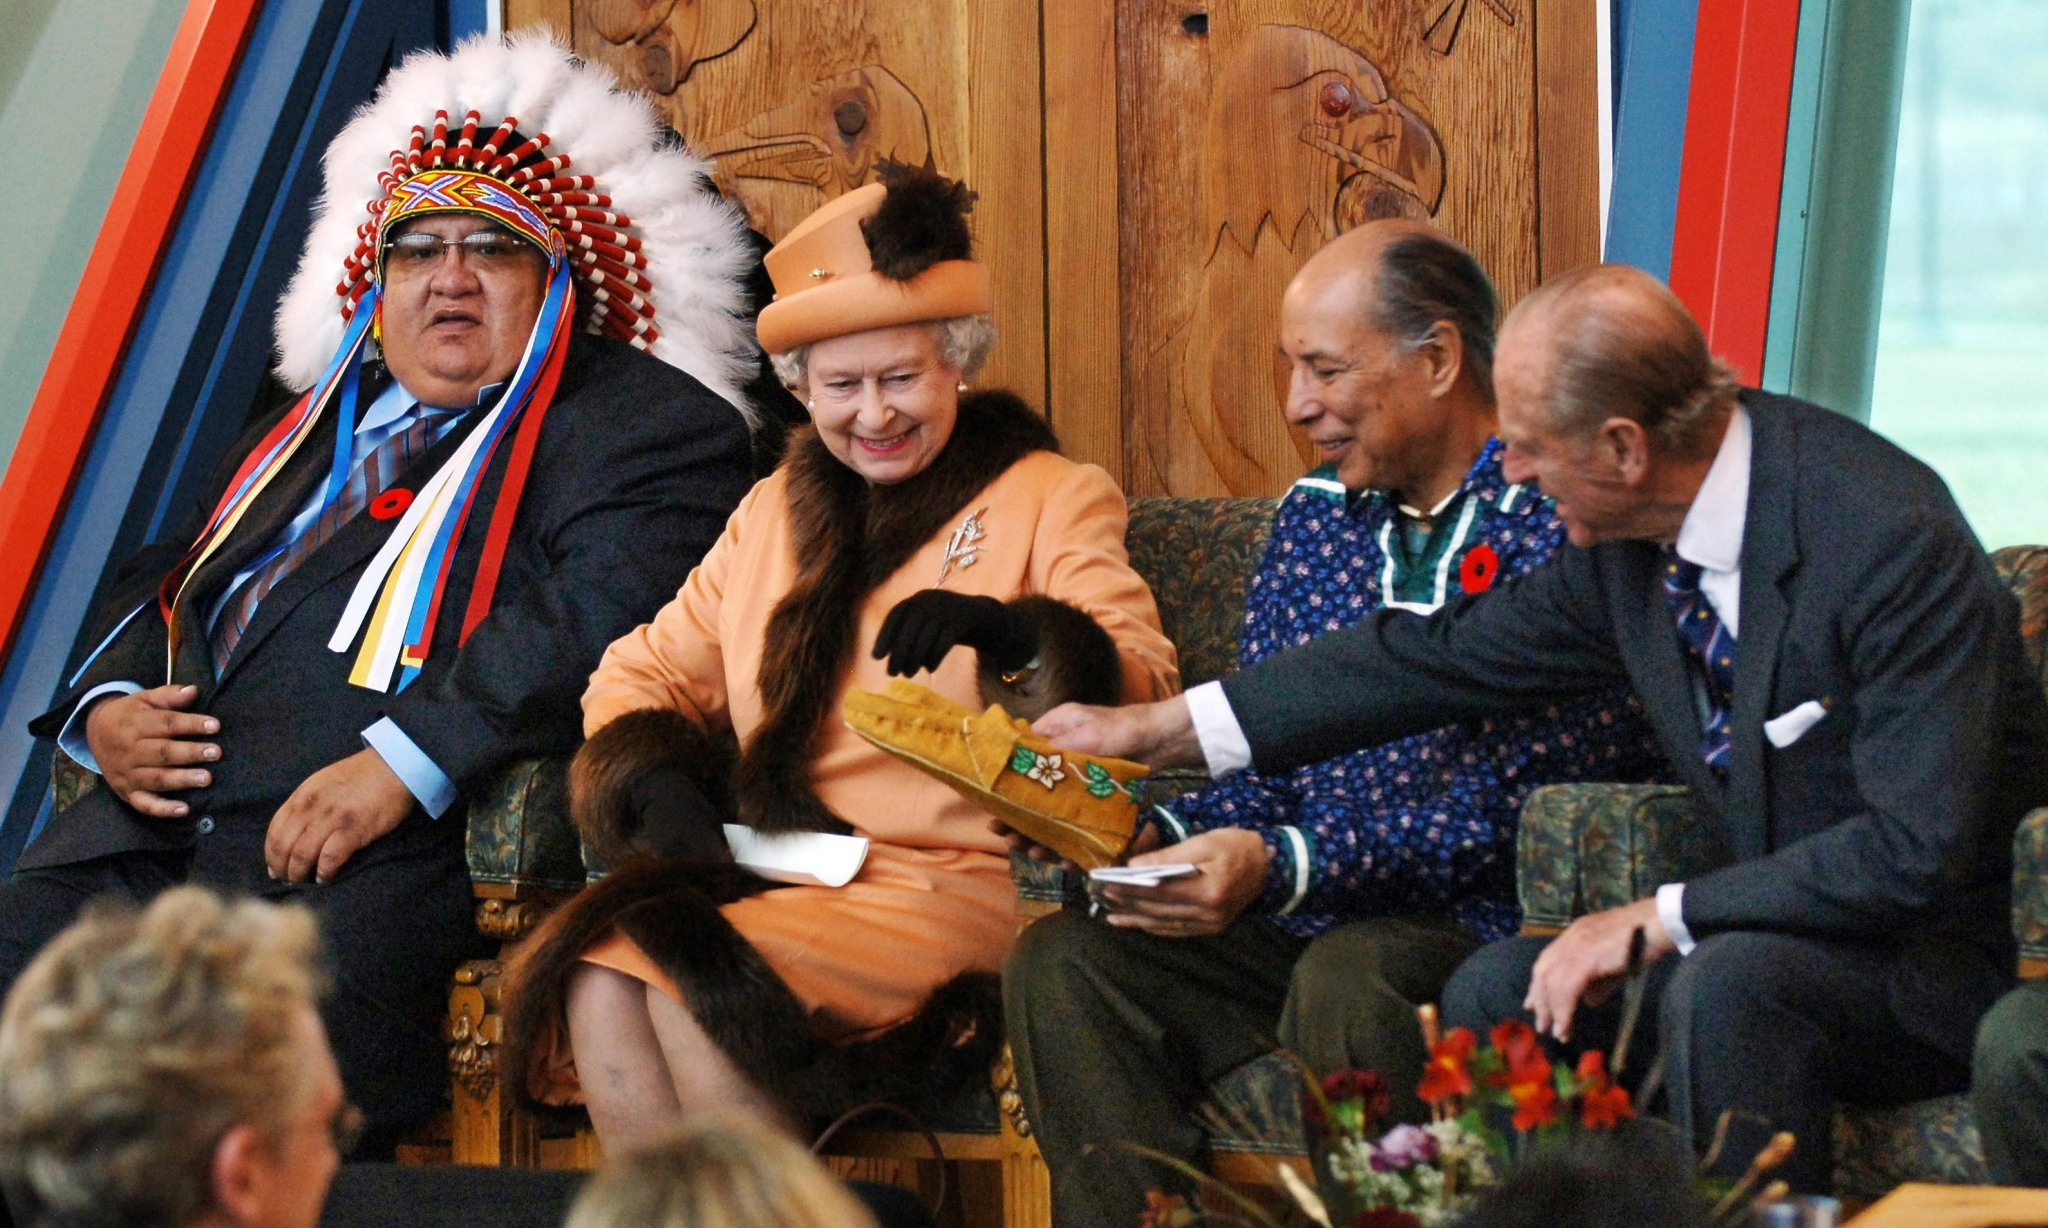 Queen Elizabeth II is shown some moccasins by the Duke of Edinburgh after he was presented with them during their visit to the First Nations University in Regina.